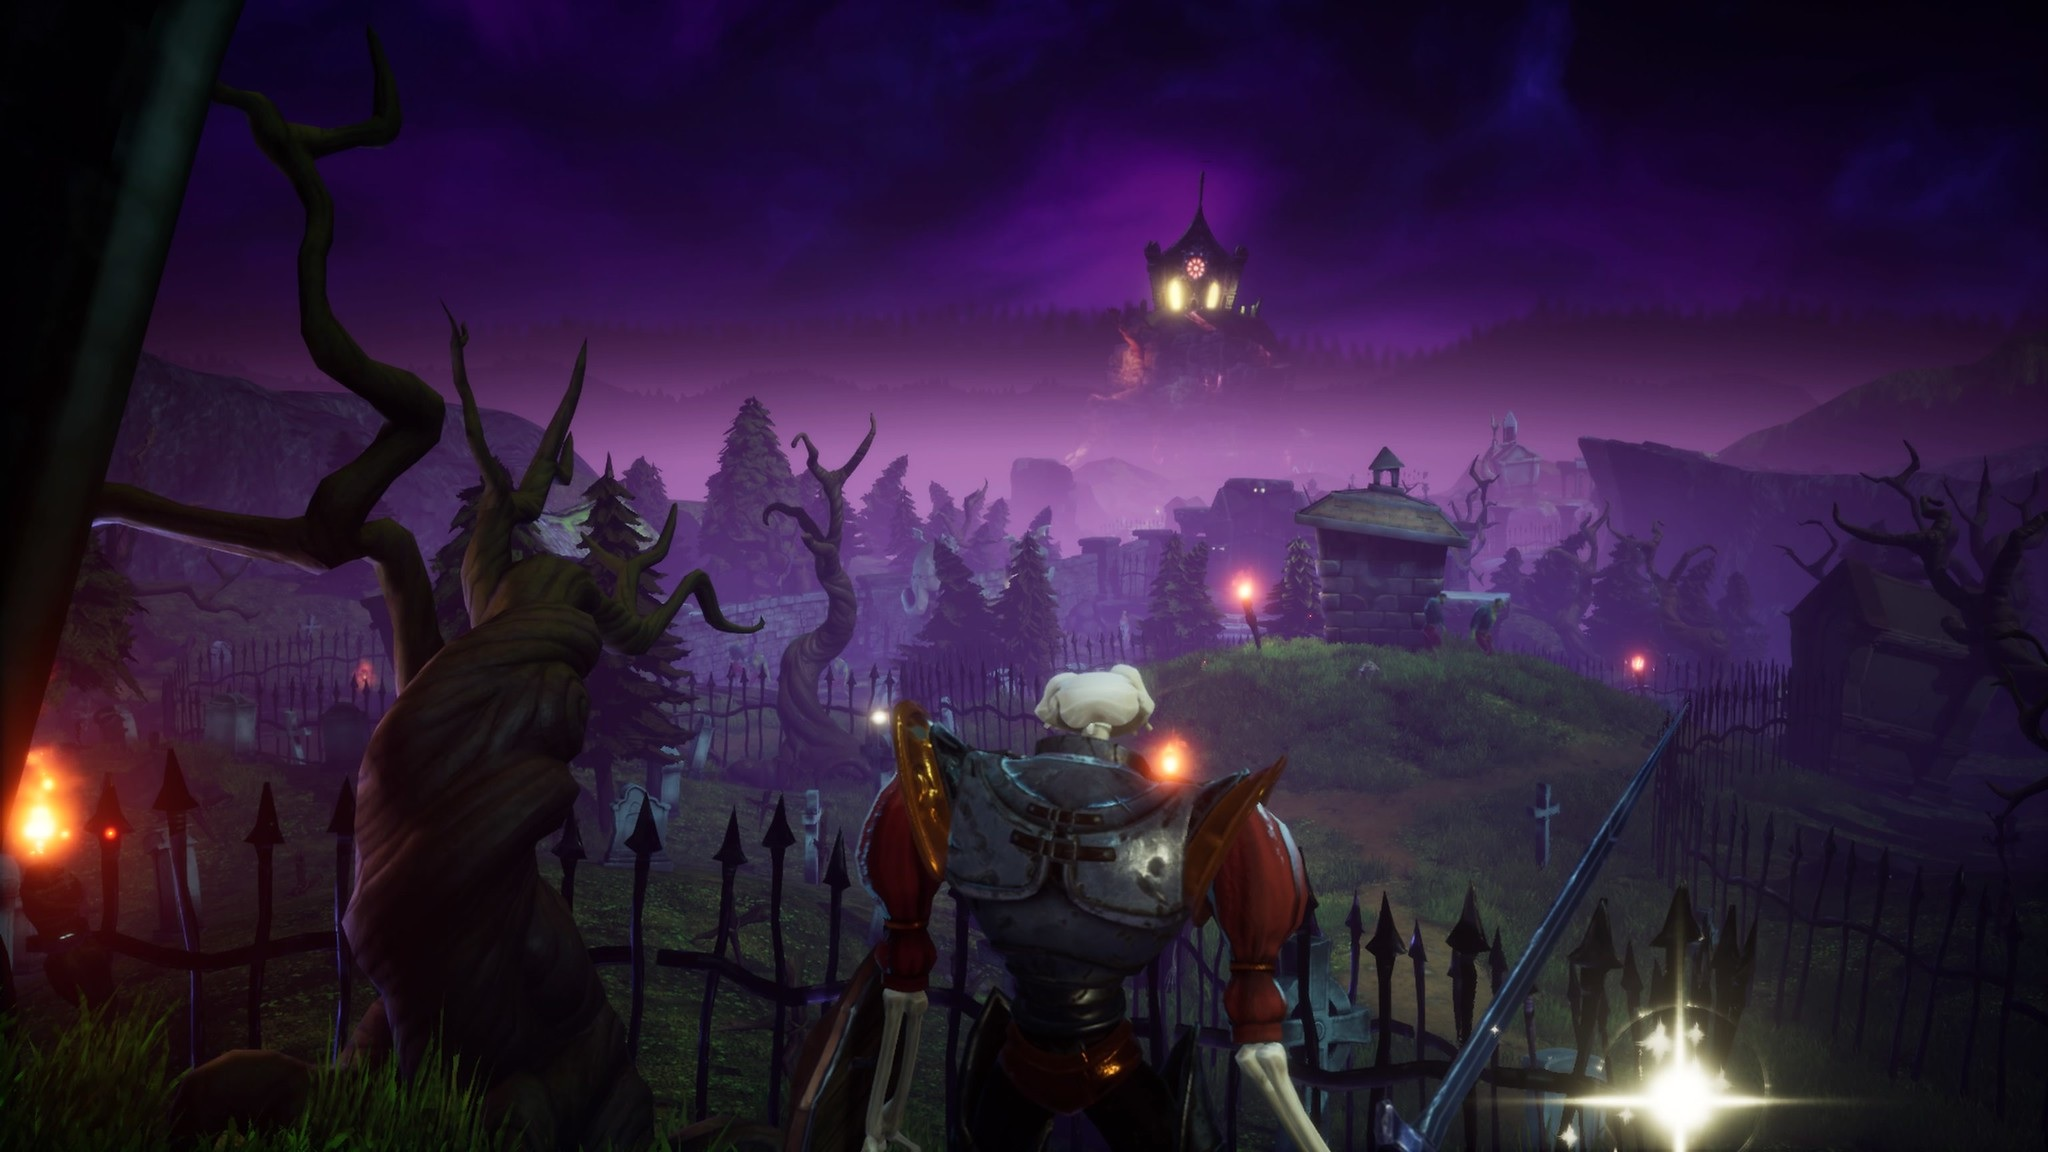 Here's how MediEvil's new demo compares to the original screenshot